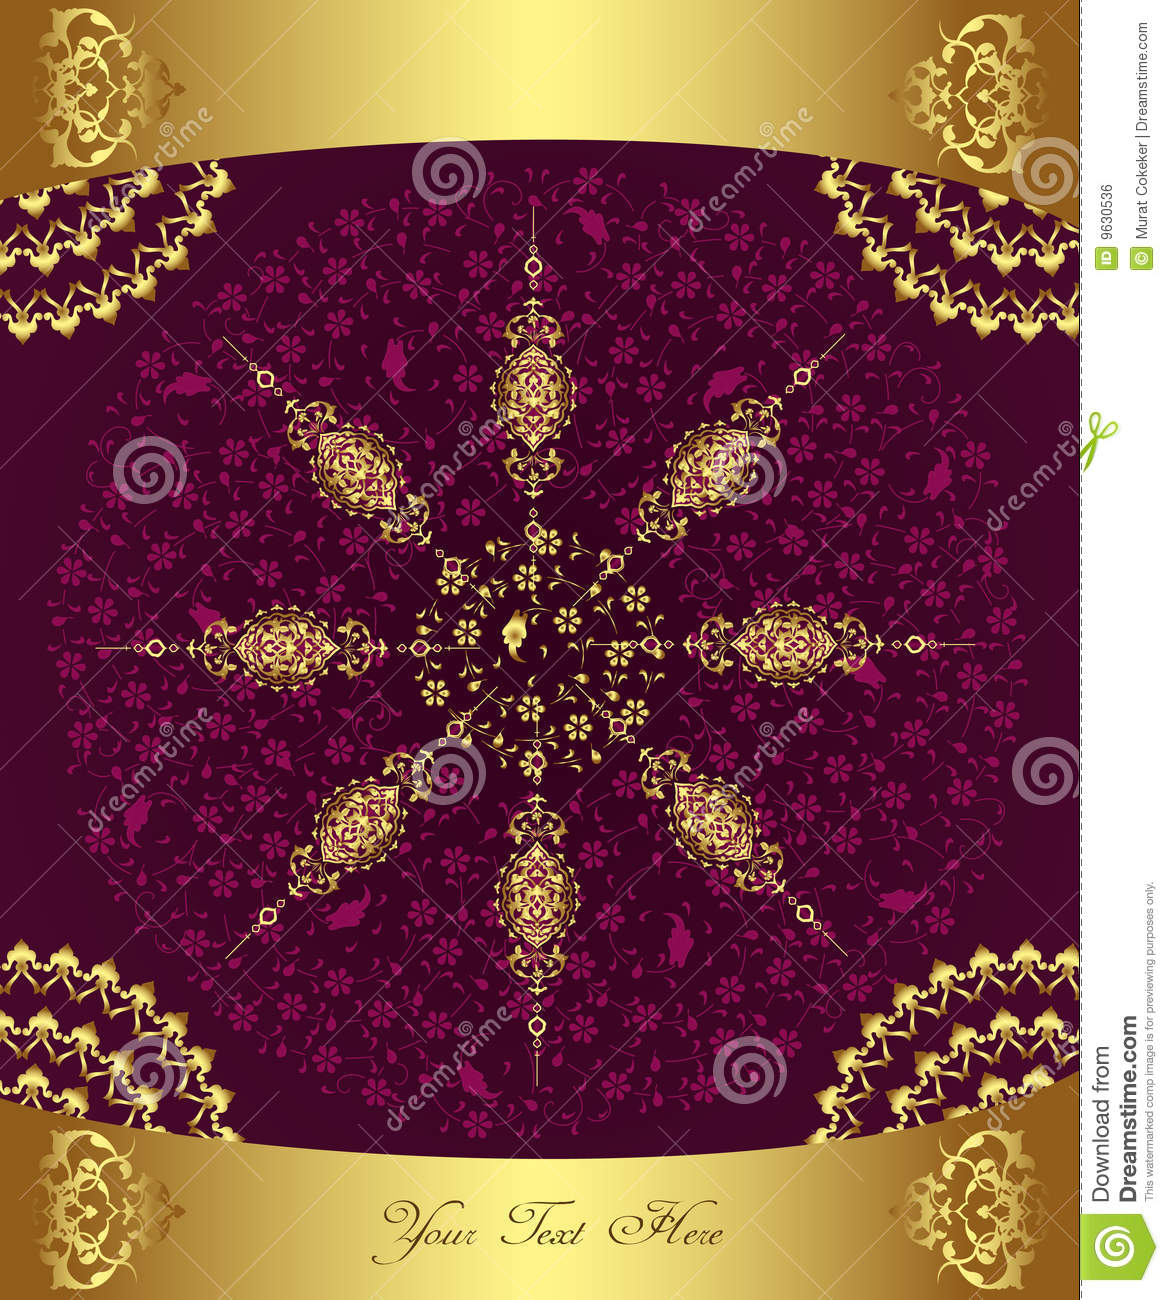 Turkish Design Wallpaper : Antique ottoman wallpaper illustration design royalty free